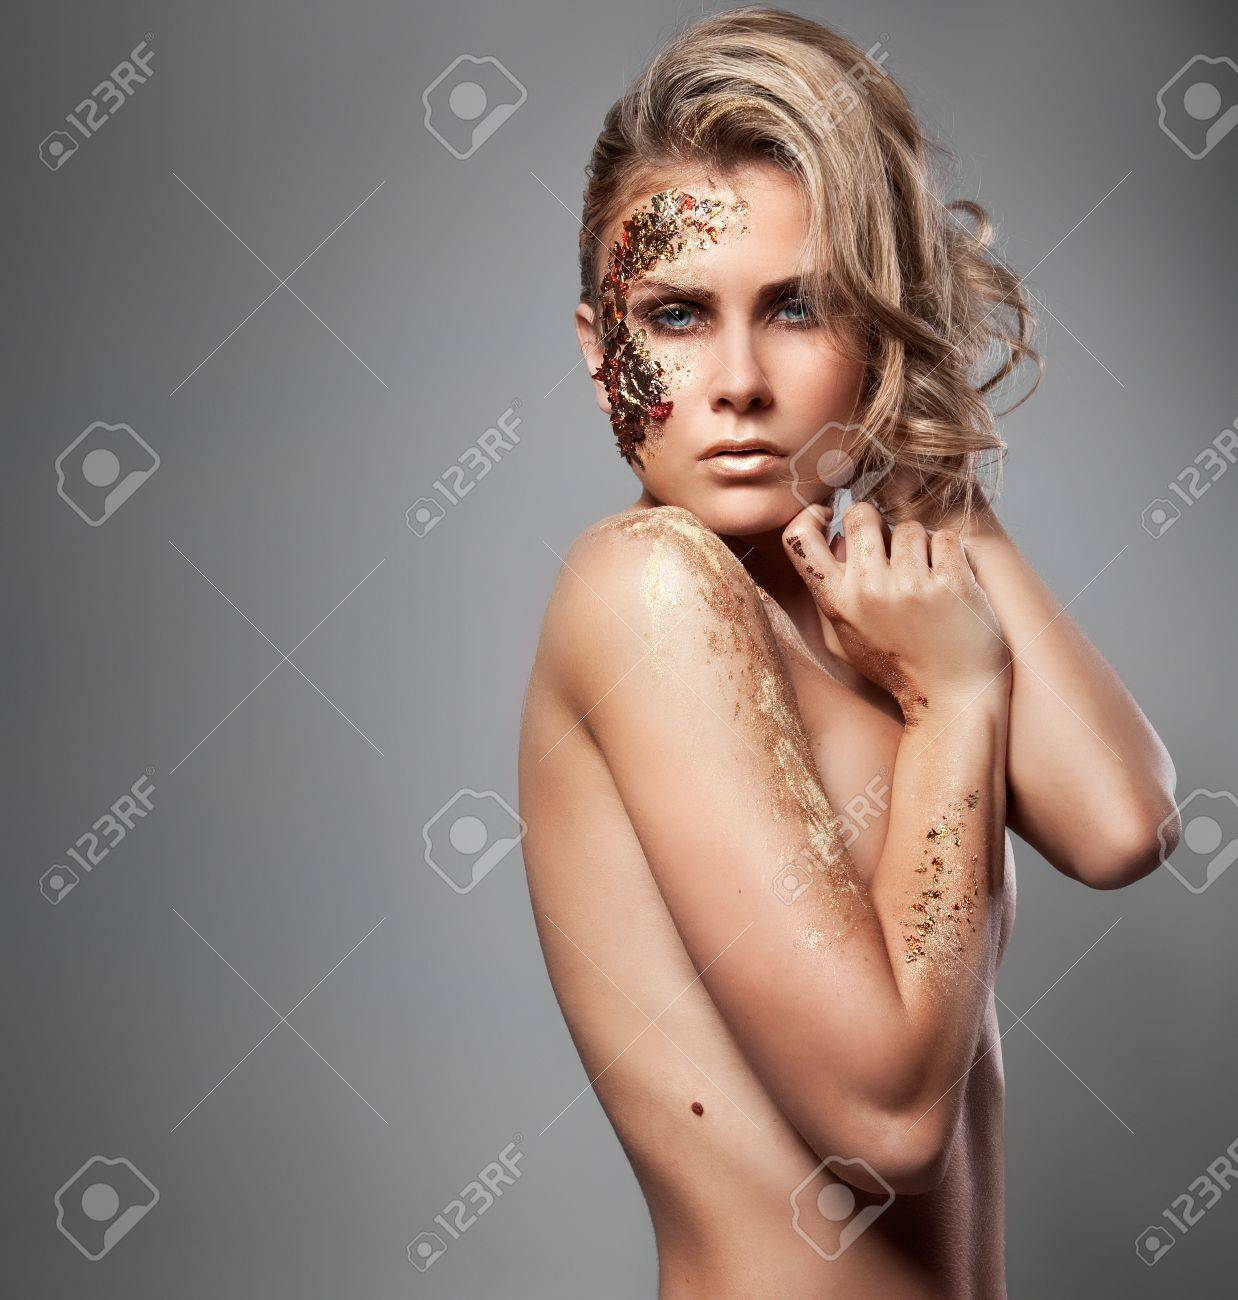 Vogue style photo of a blond woman with colorful makeup Stock Photo - 10019521